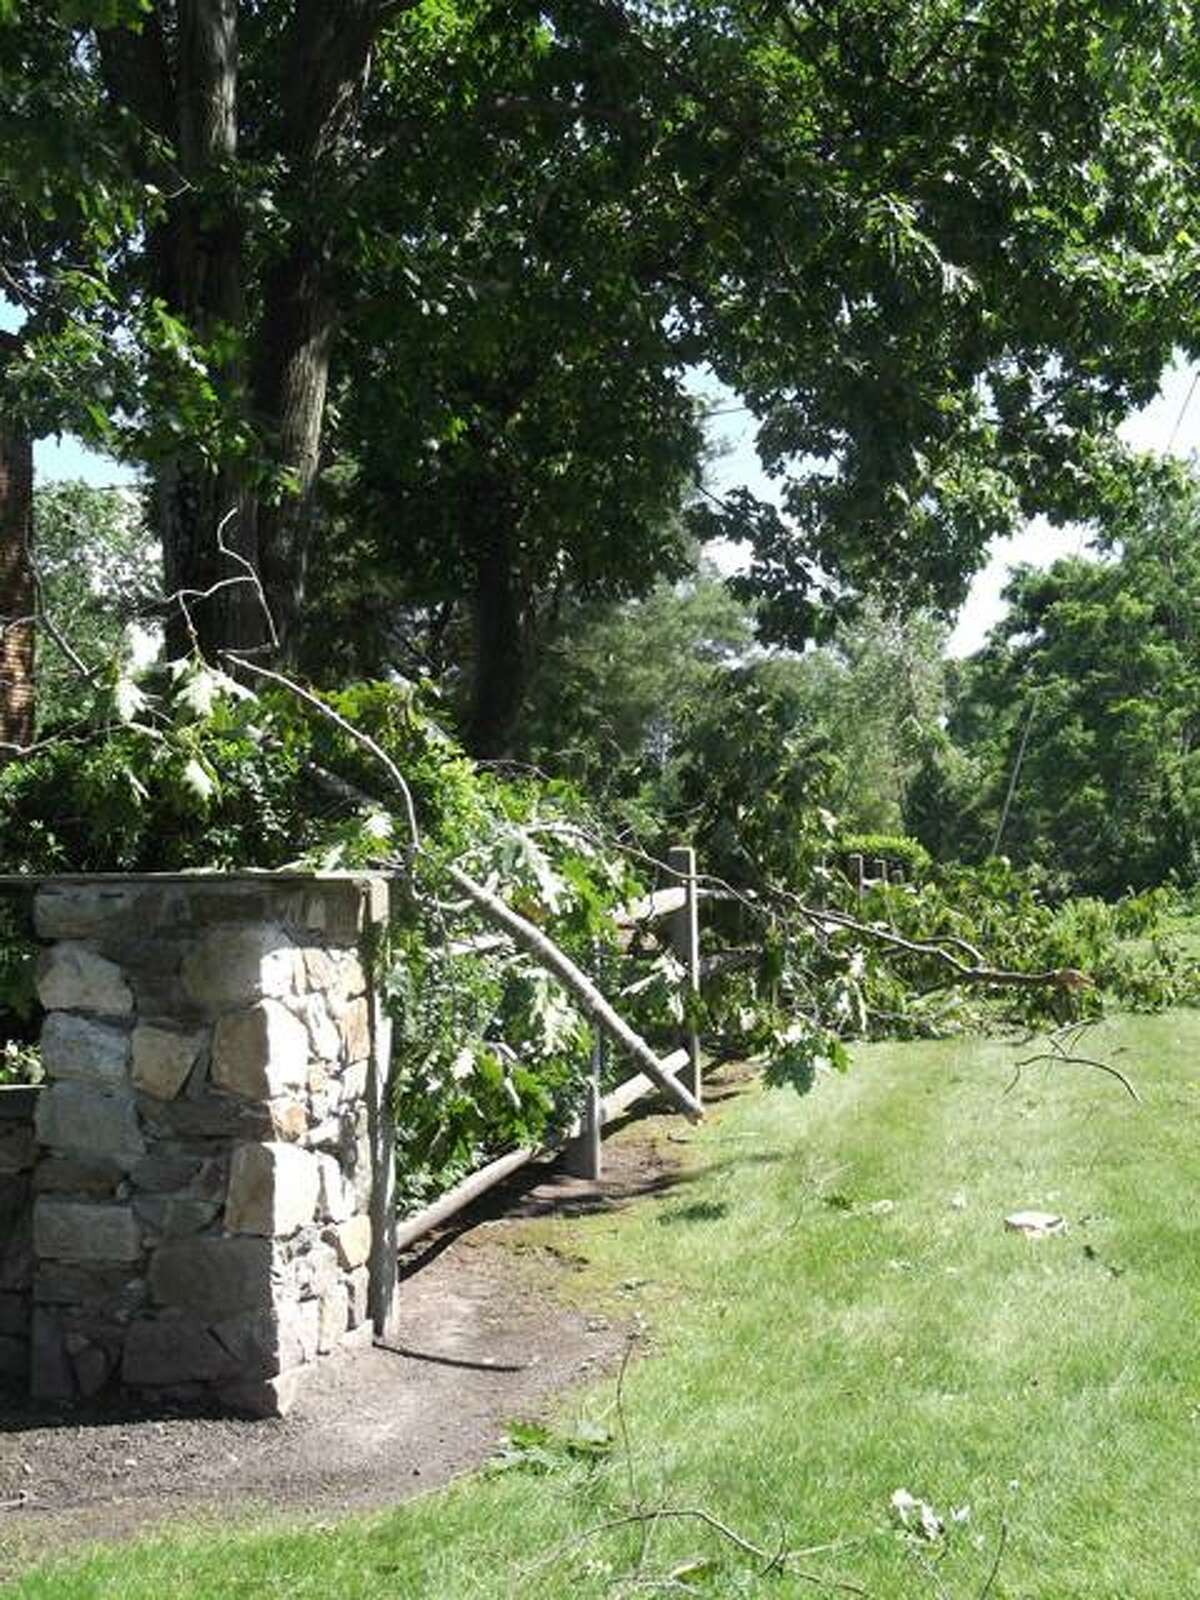 RICKY CAMPBELL/ Register Citizen Tree branches snapped off and fell along the wall of the St. Francis Cemetery on Torrington's South Main Street during the Friday evening storm. On Saturday, crews from tree services, the City of Torrington and Connecticut Light & Power handled their respective jobs.